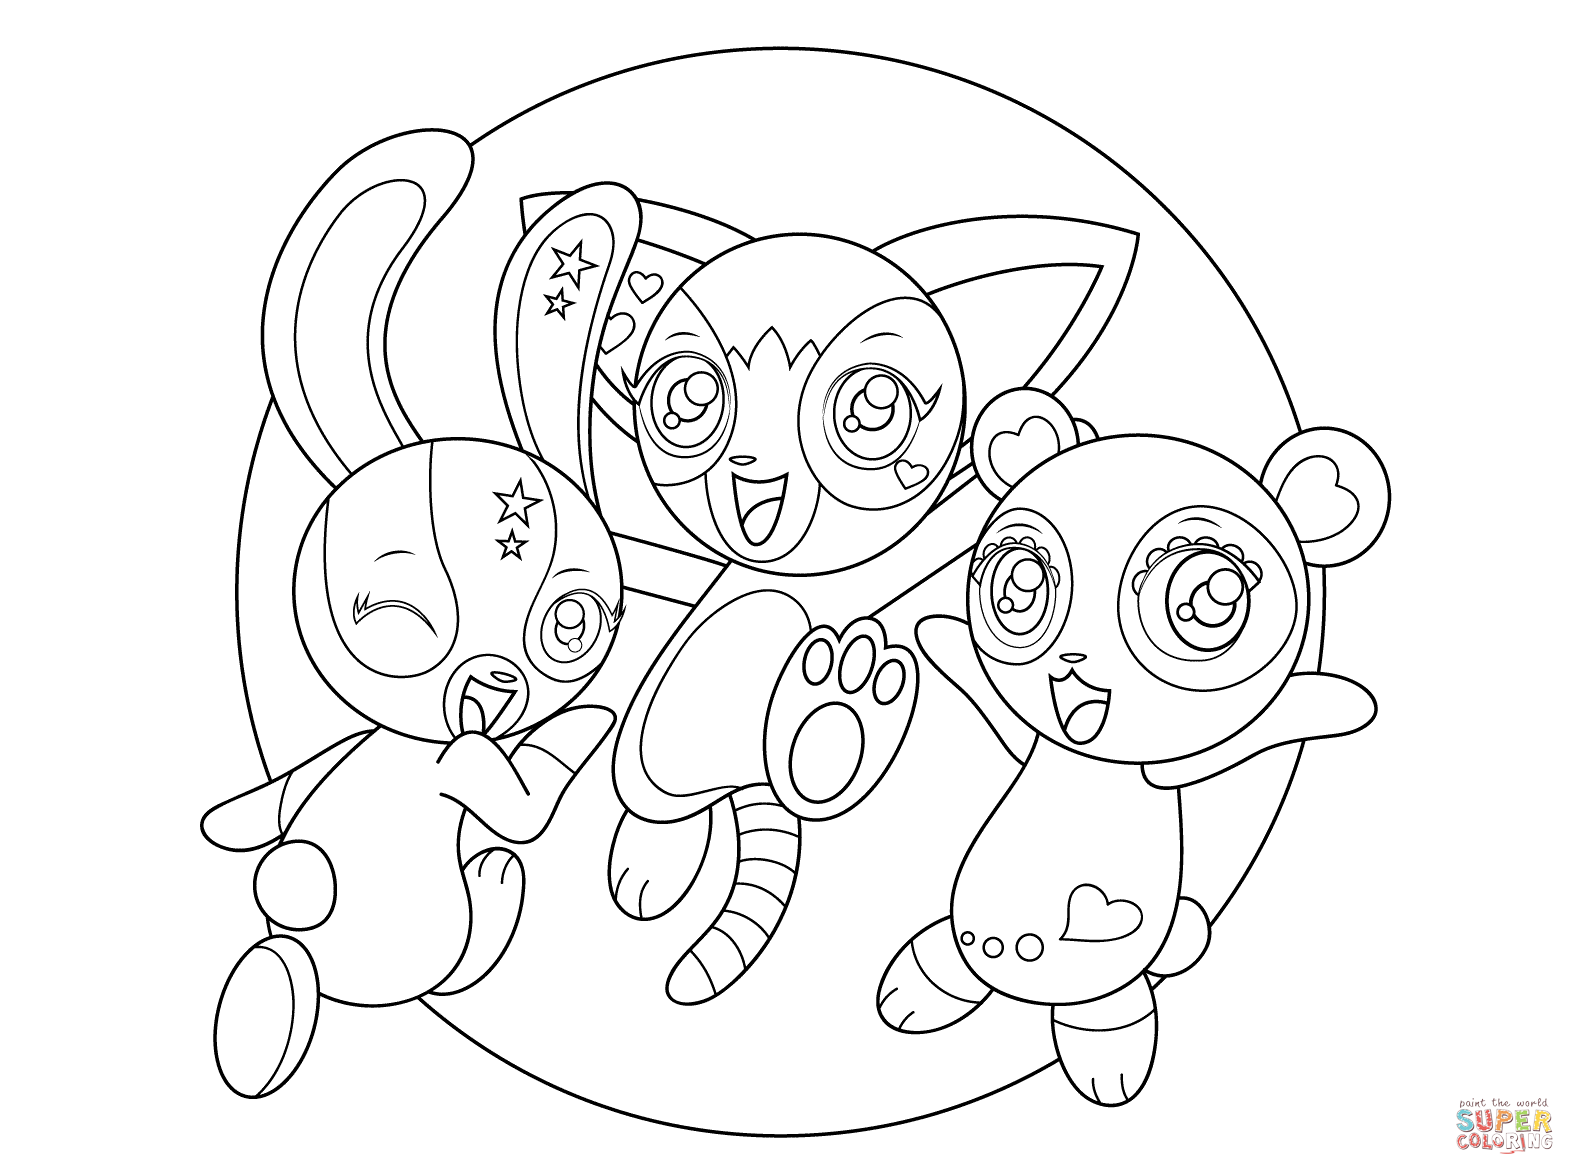 zoobles coloring pages zoobles coloring pages to download and print for free coloring zoobles pages